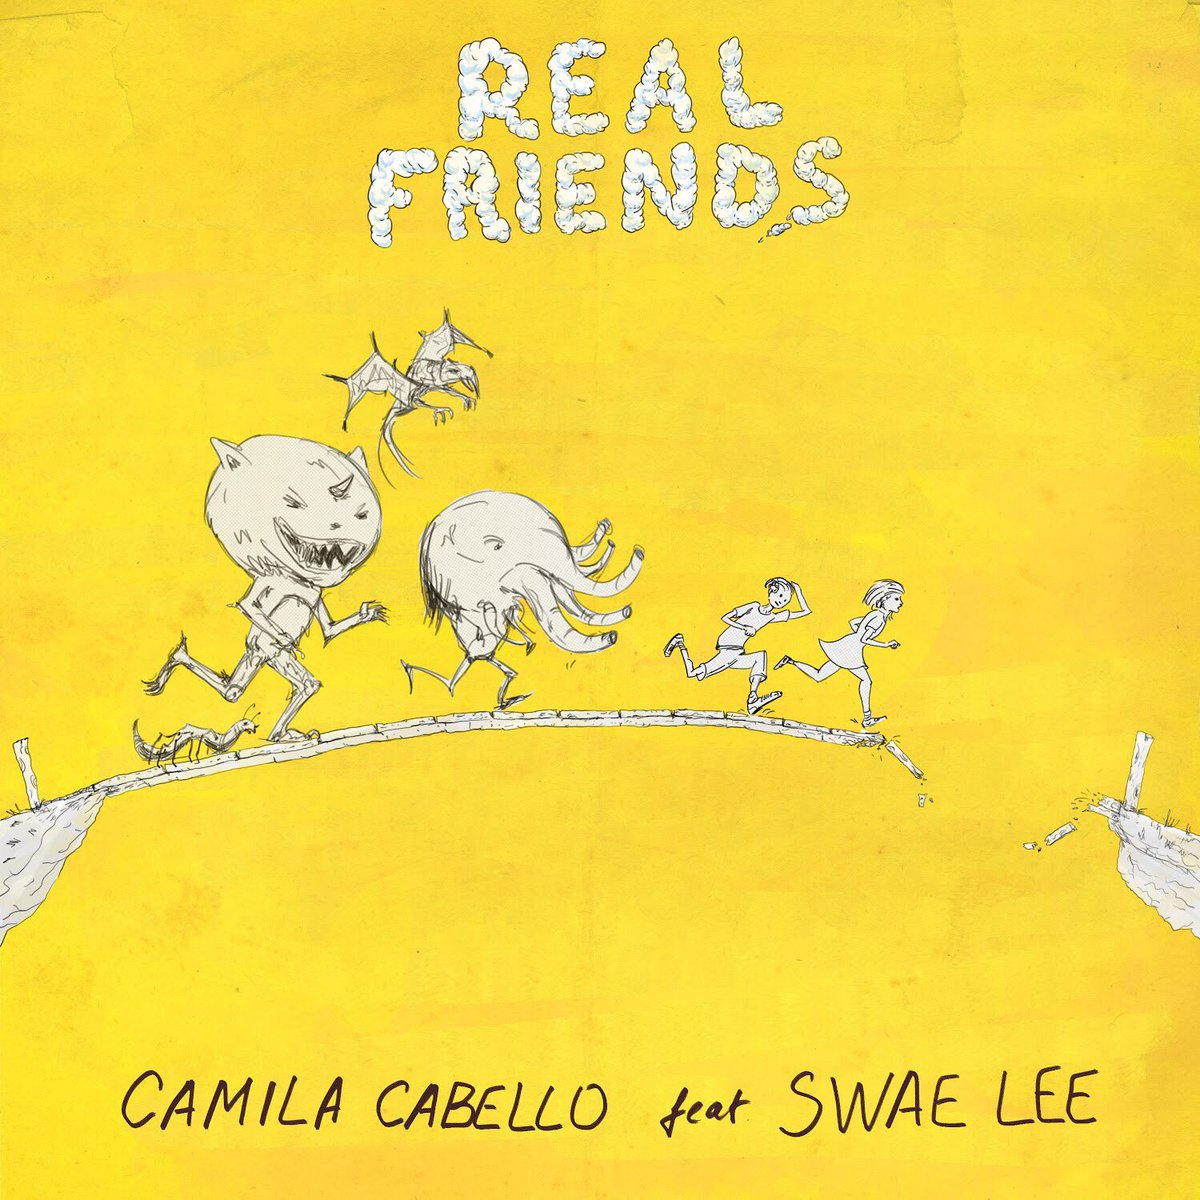 this one's for you ��  #realfriends @goswaelee https://t.co/GOjJhKDuyE https://t.co/HGHYooDsn8